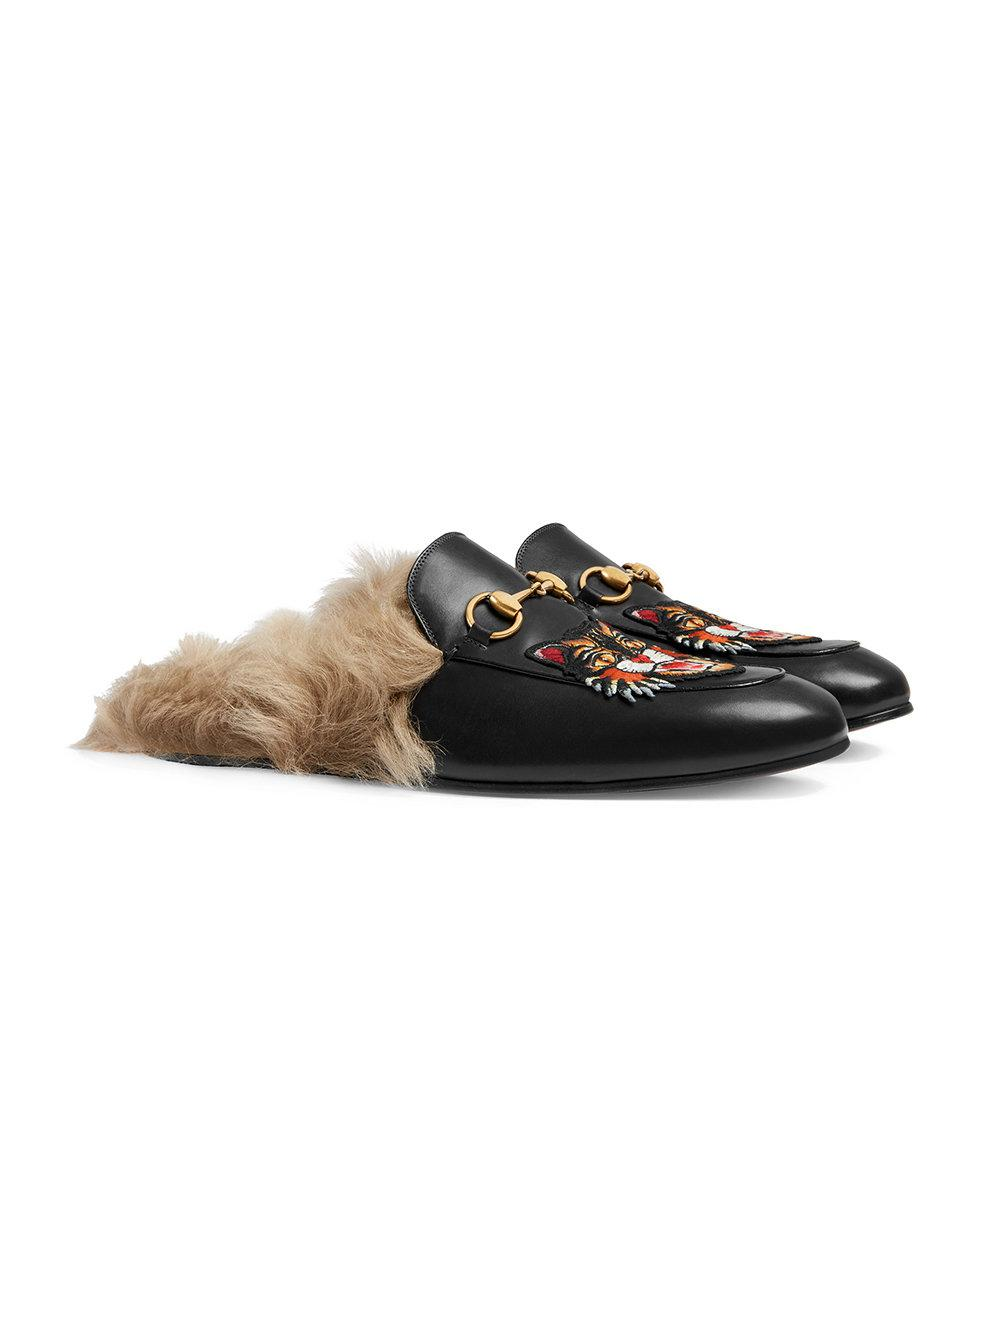 6e6423c4253 Lyst - Gucci Princetown Slippers With Angry Cat Appliqué in Black for Men -  Save 36%